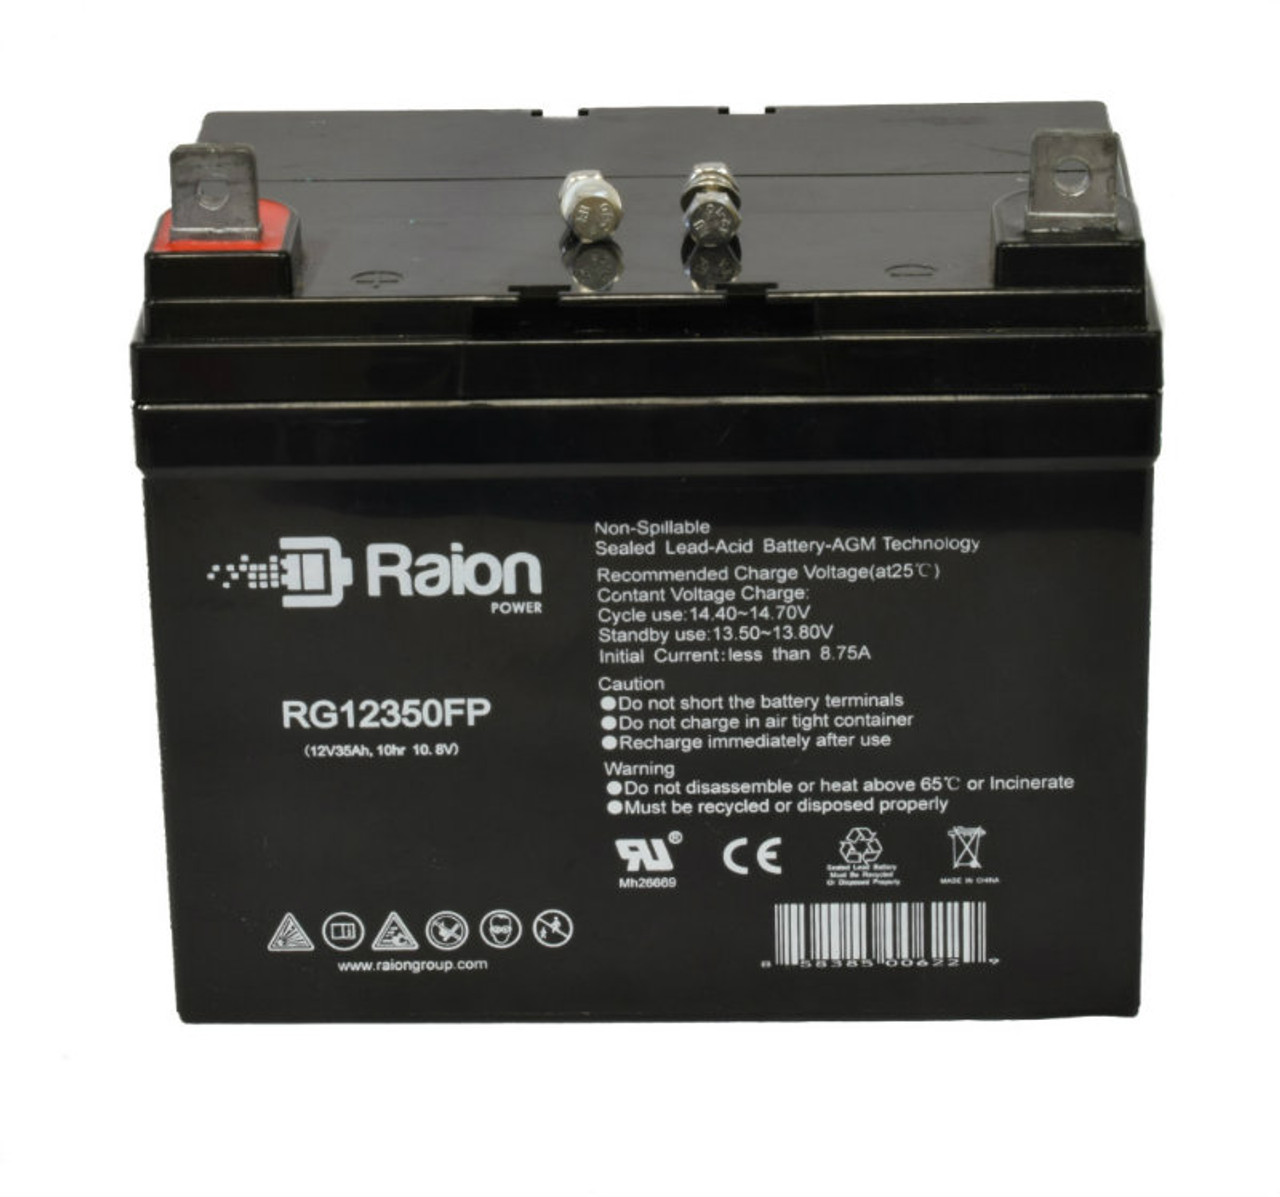 RG12350FP Sealed Lead Acid Battery Pack For Suntech Targa 16 Inch x 18 Inch Mobility Scooter